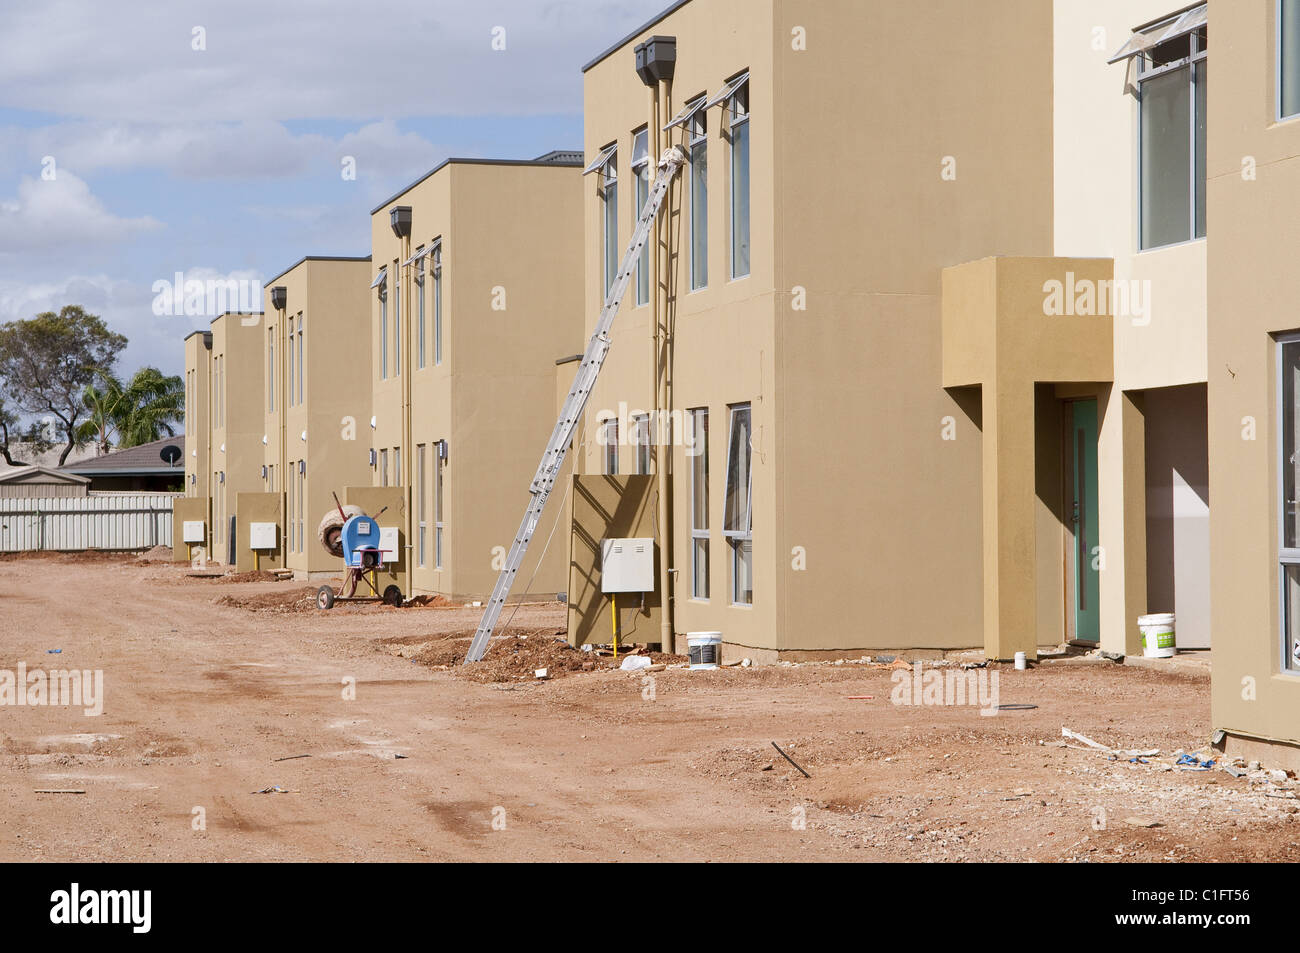 Construction of modern houses/offices in suburban Adelaide, South Australia. Stock Photo